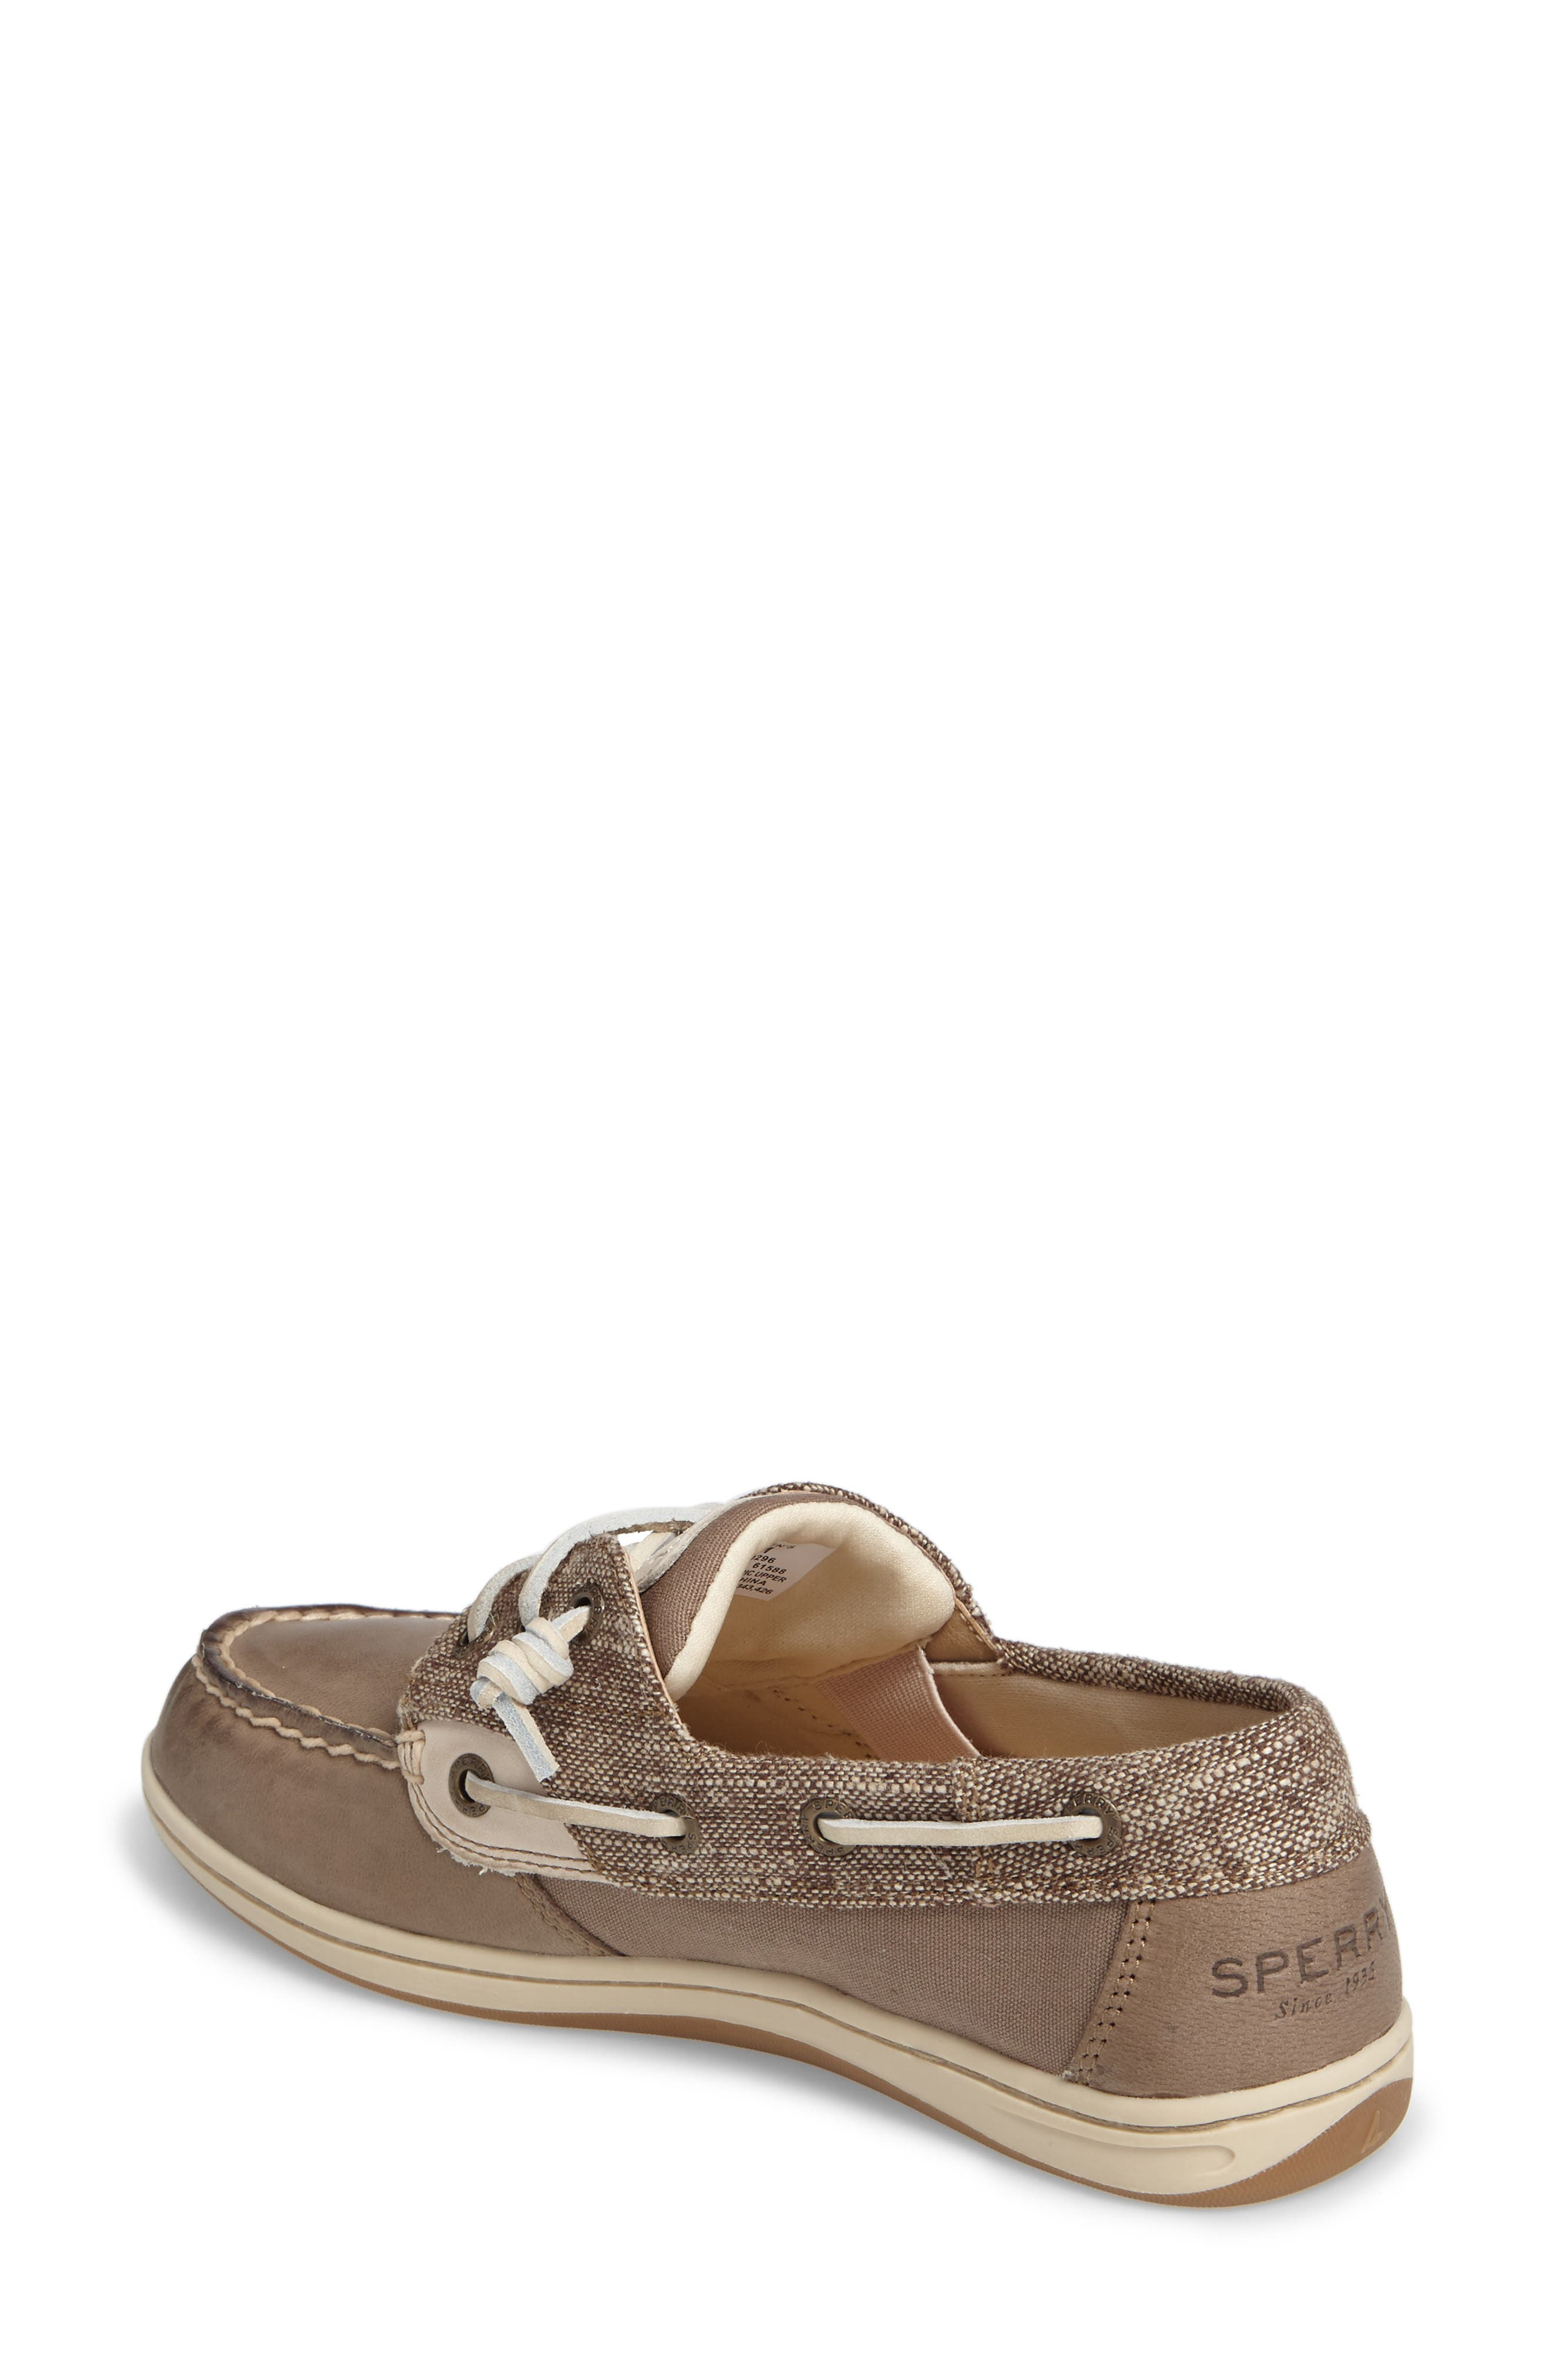 Alternate Image 2  - Sperry 'Songfish' Boat Shoe (Women)